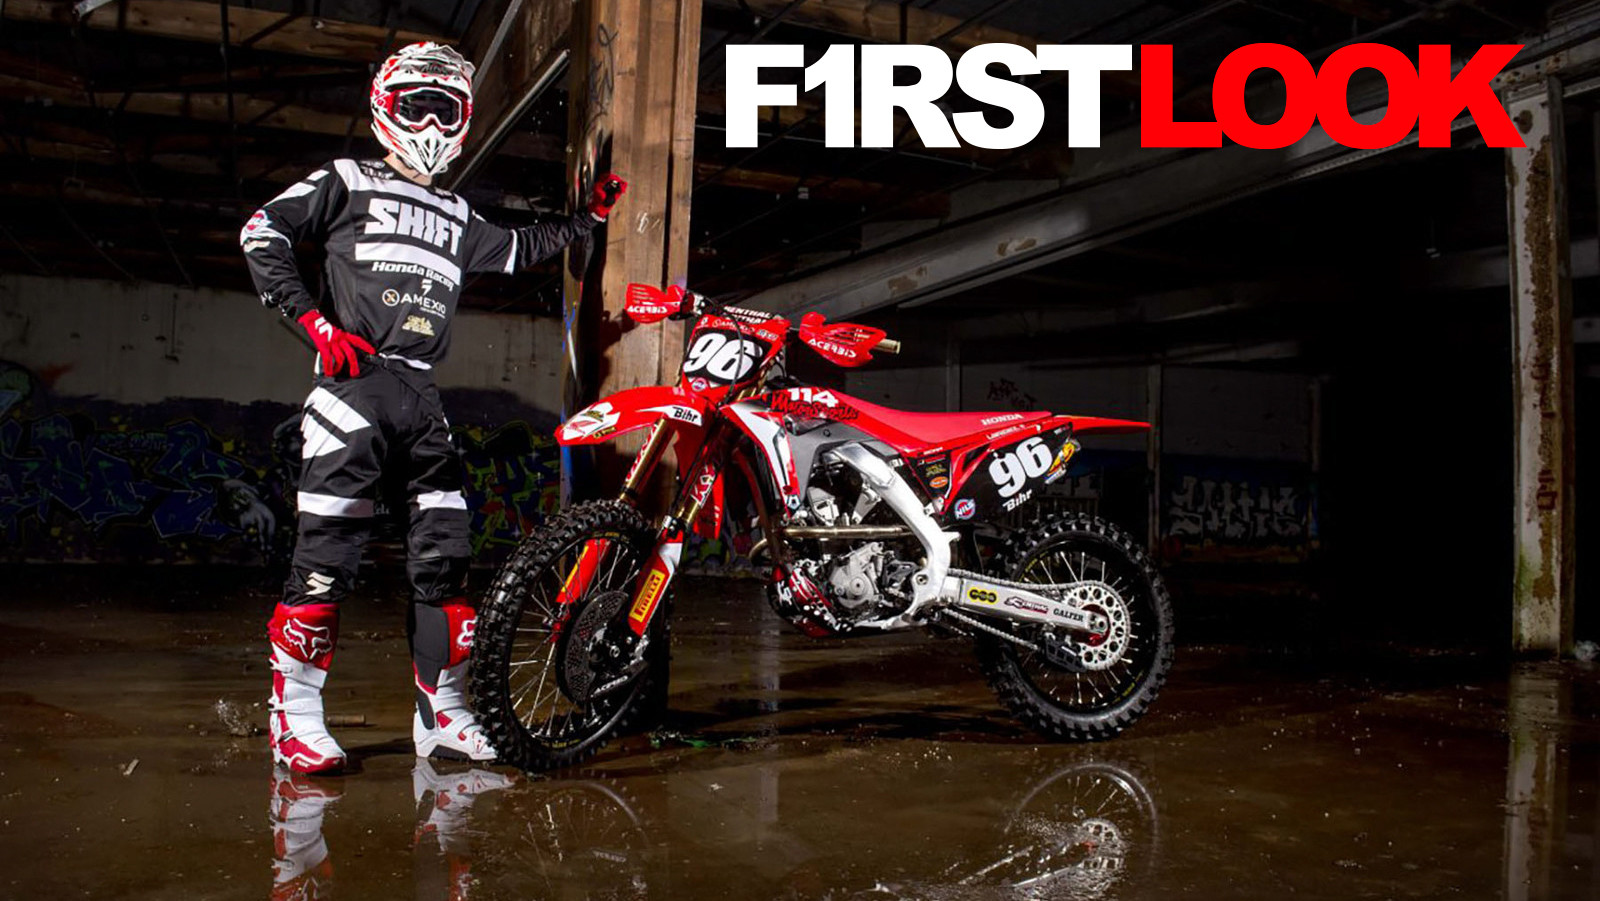 First Look: 2018 Team 114 Honda - Hunter Lawrence & Bas Vaessen